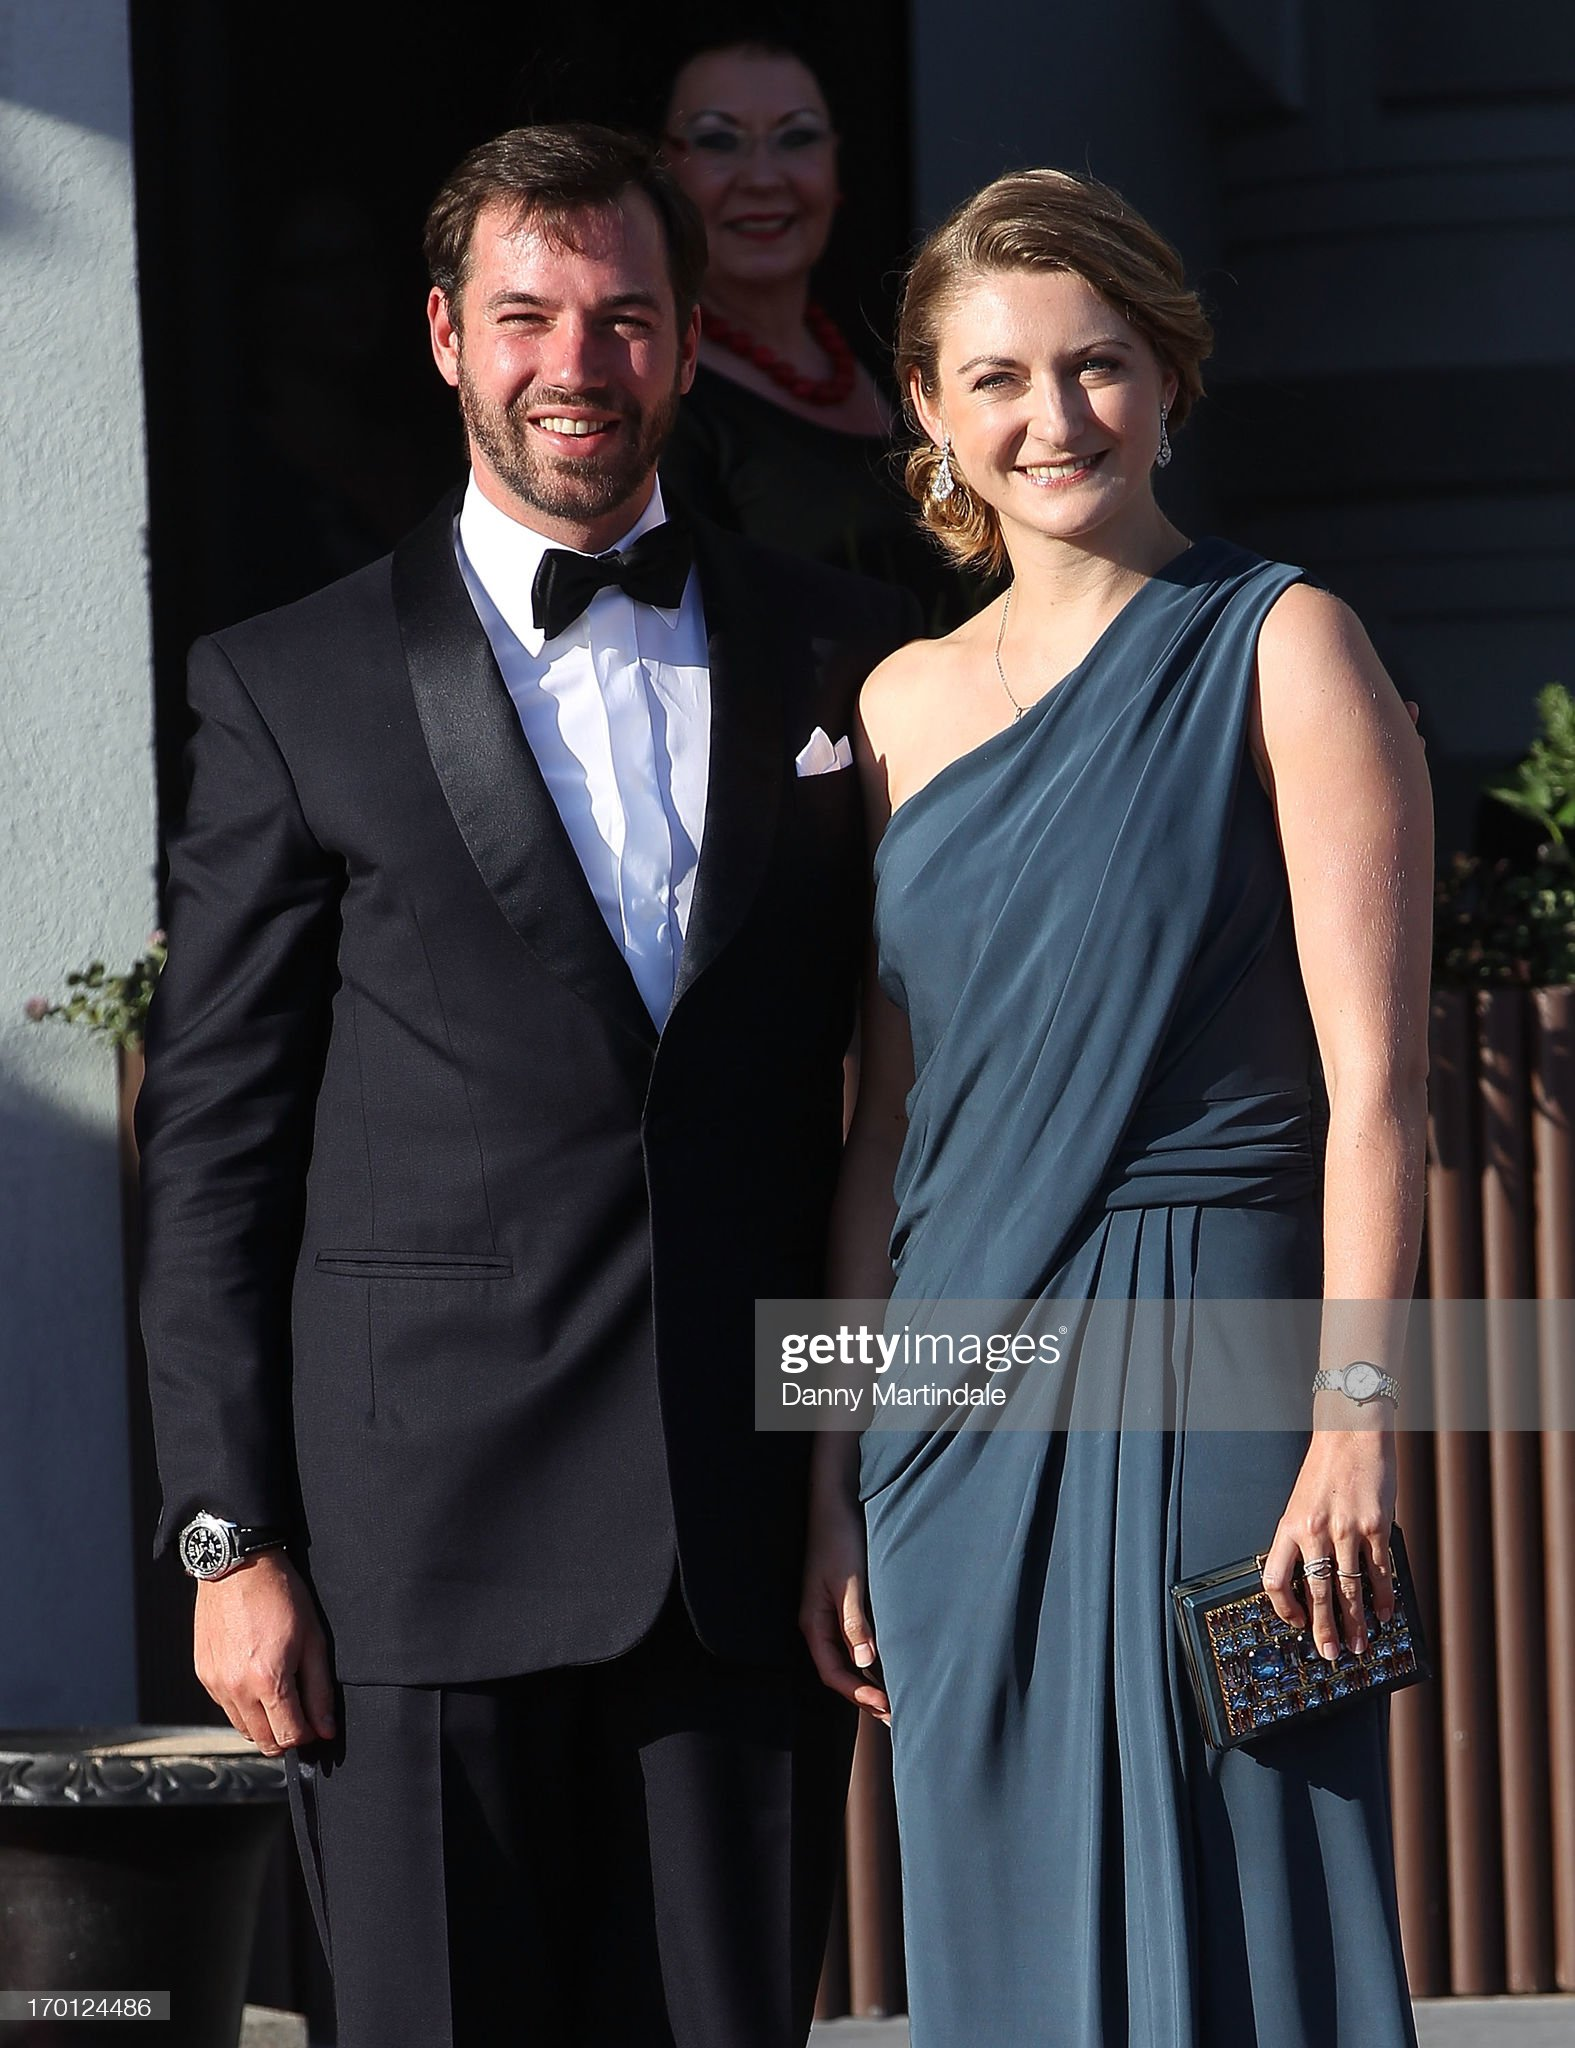 King Carl Gustav & Queen Silvia Host Private Dinner For The Wedding Of Princess Madeleine & Christopher O'Neill-Outside Arrivals : News Photo